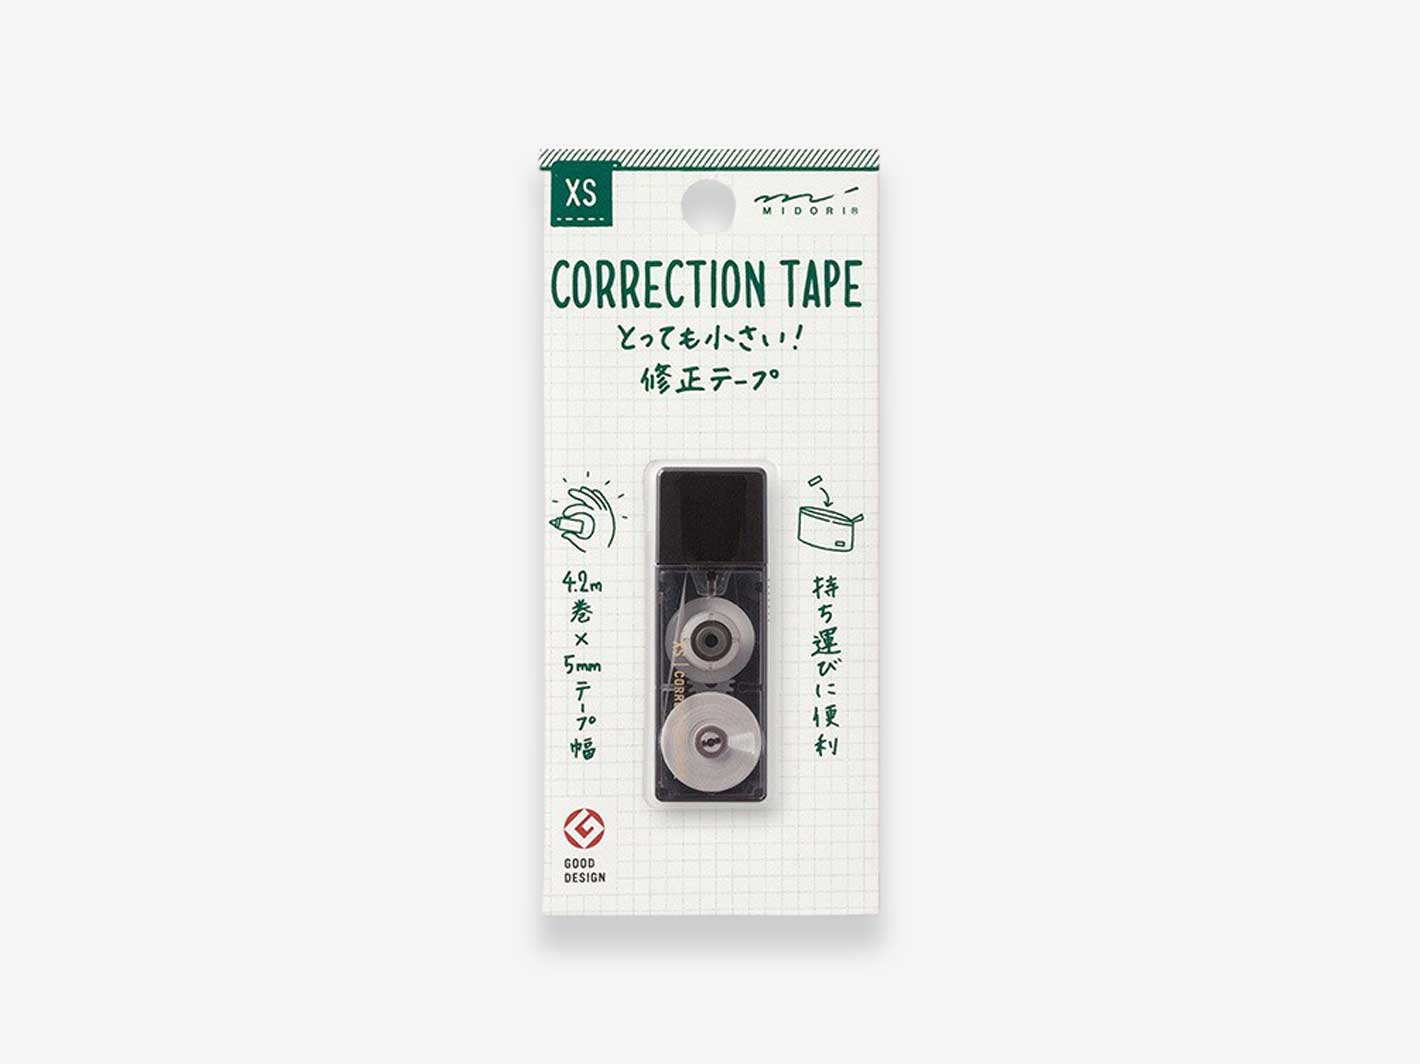 XS Correction Tape